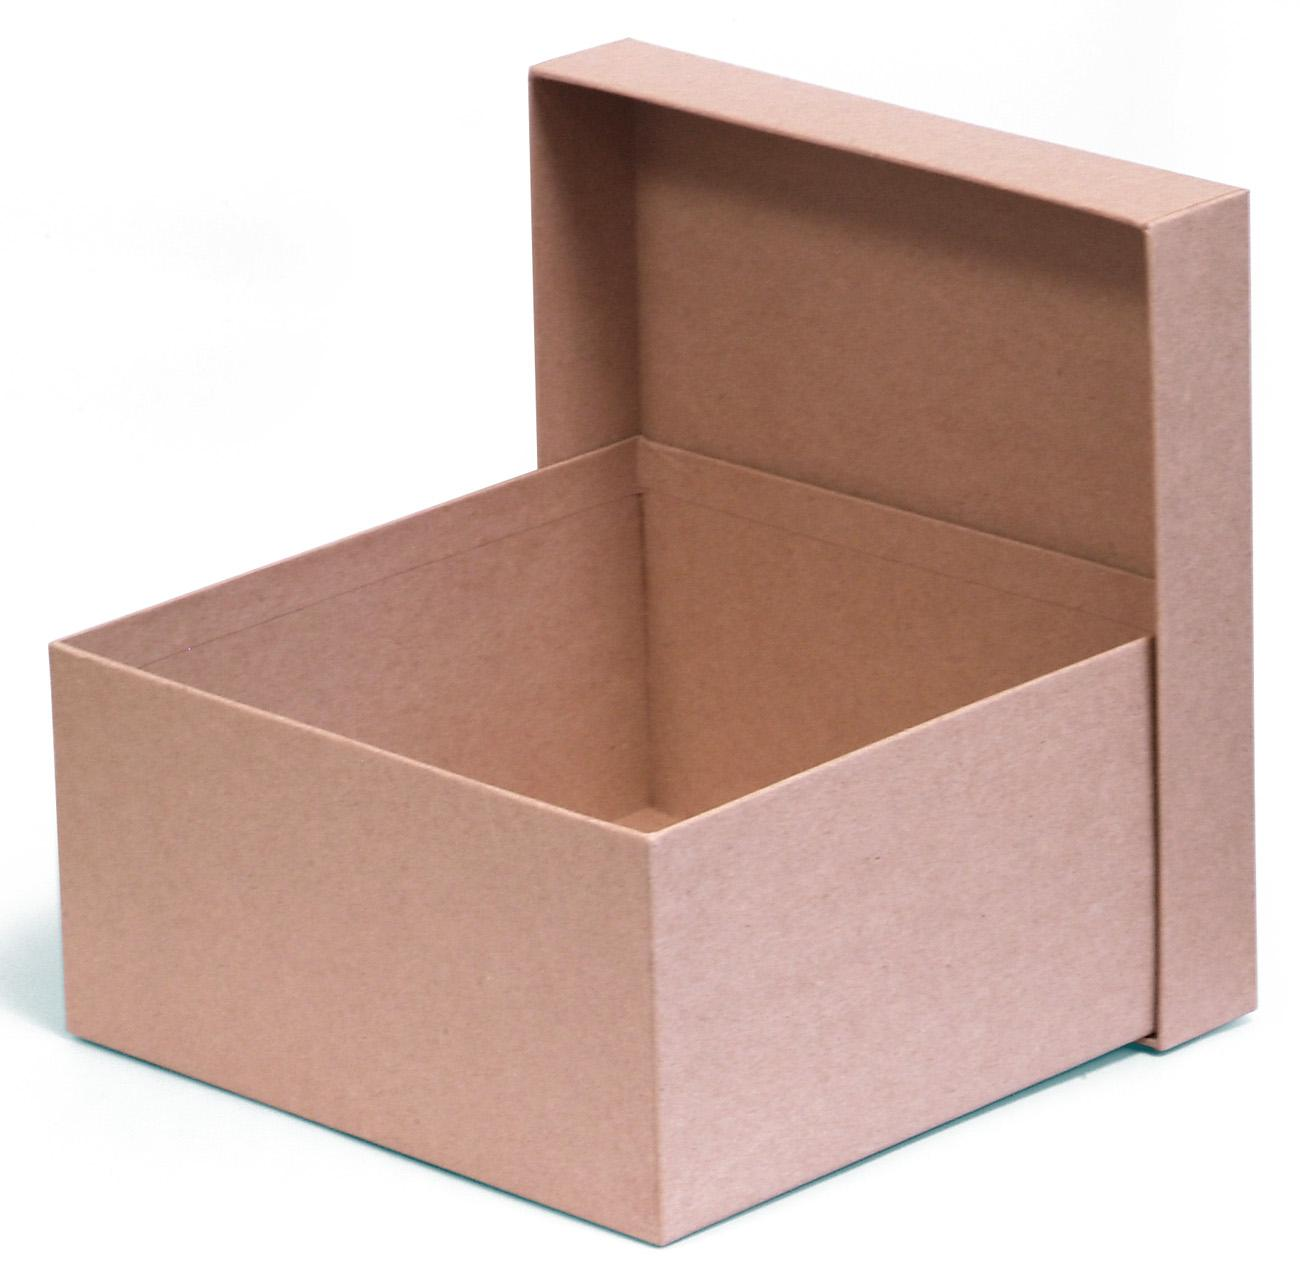 Kraft boxes are the best packaging choice. Here are some reasons why?